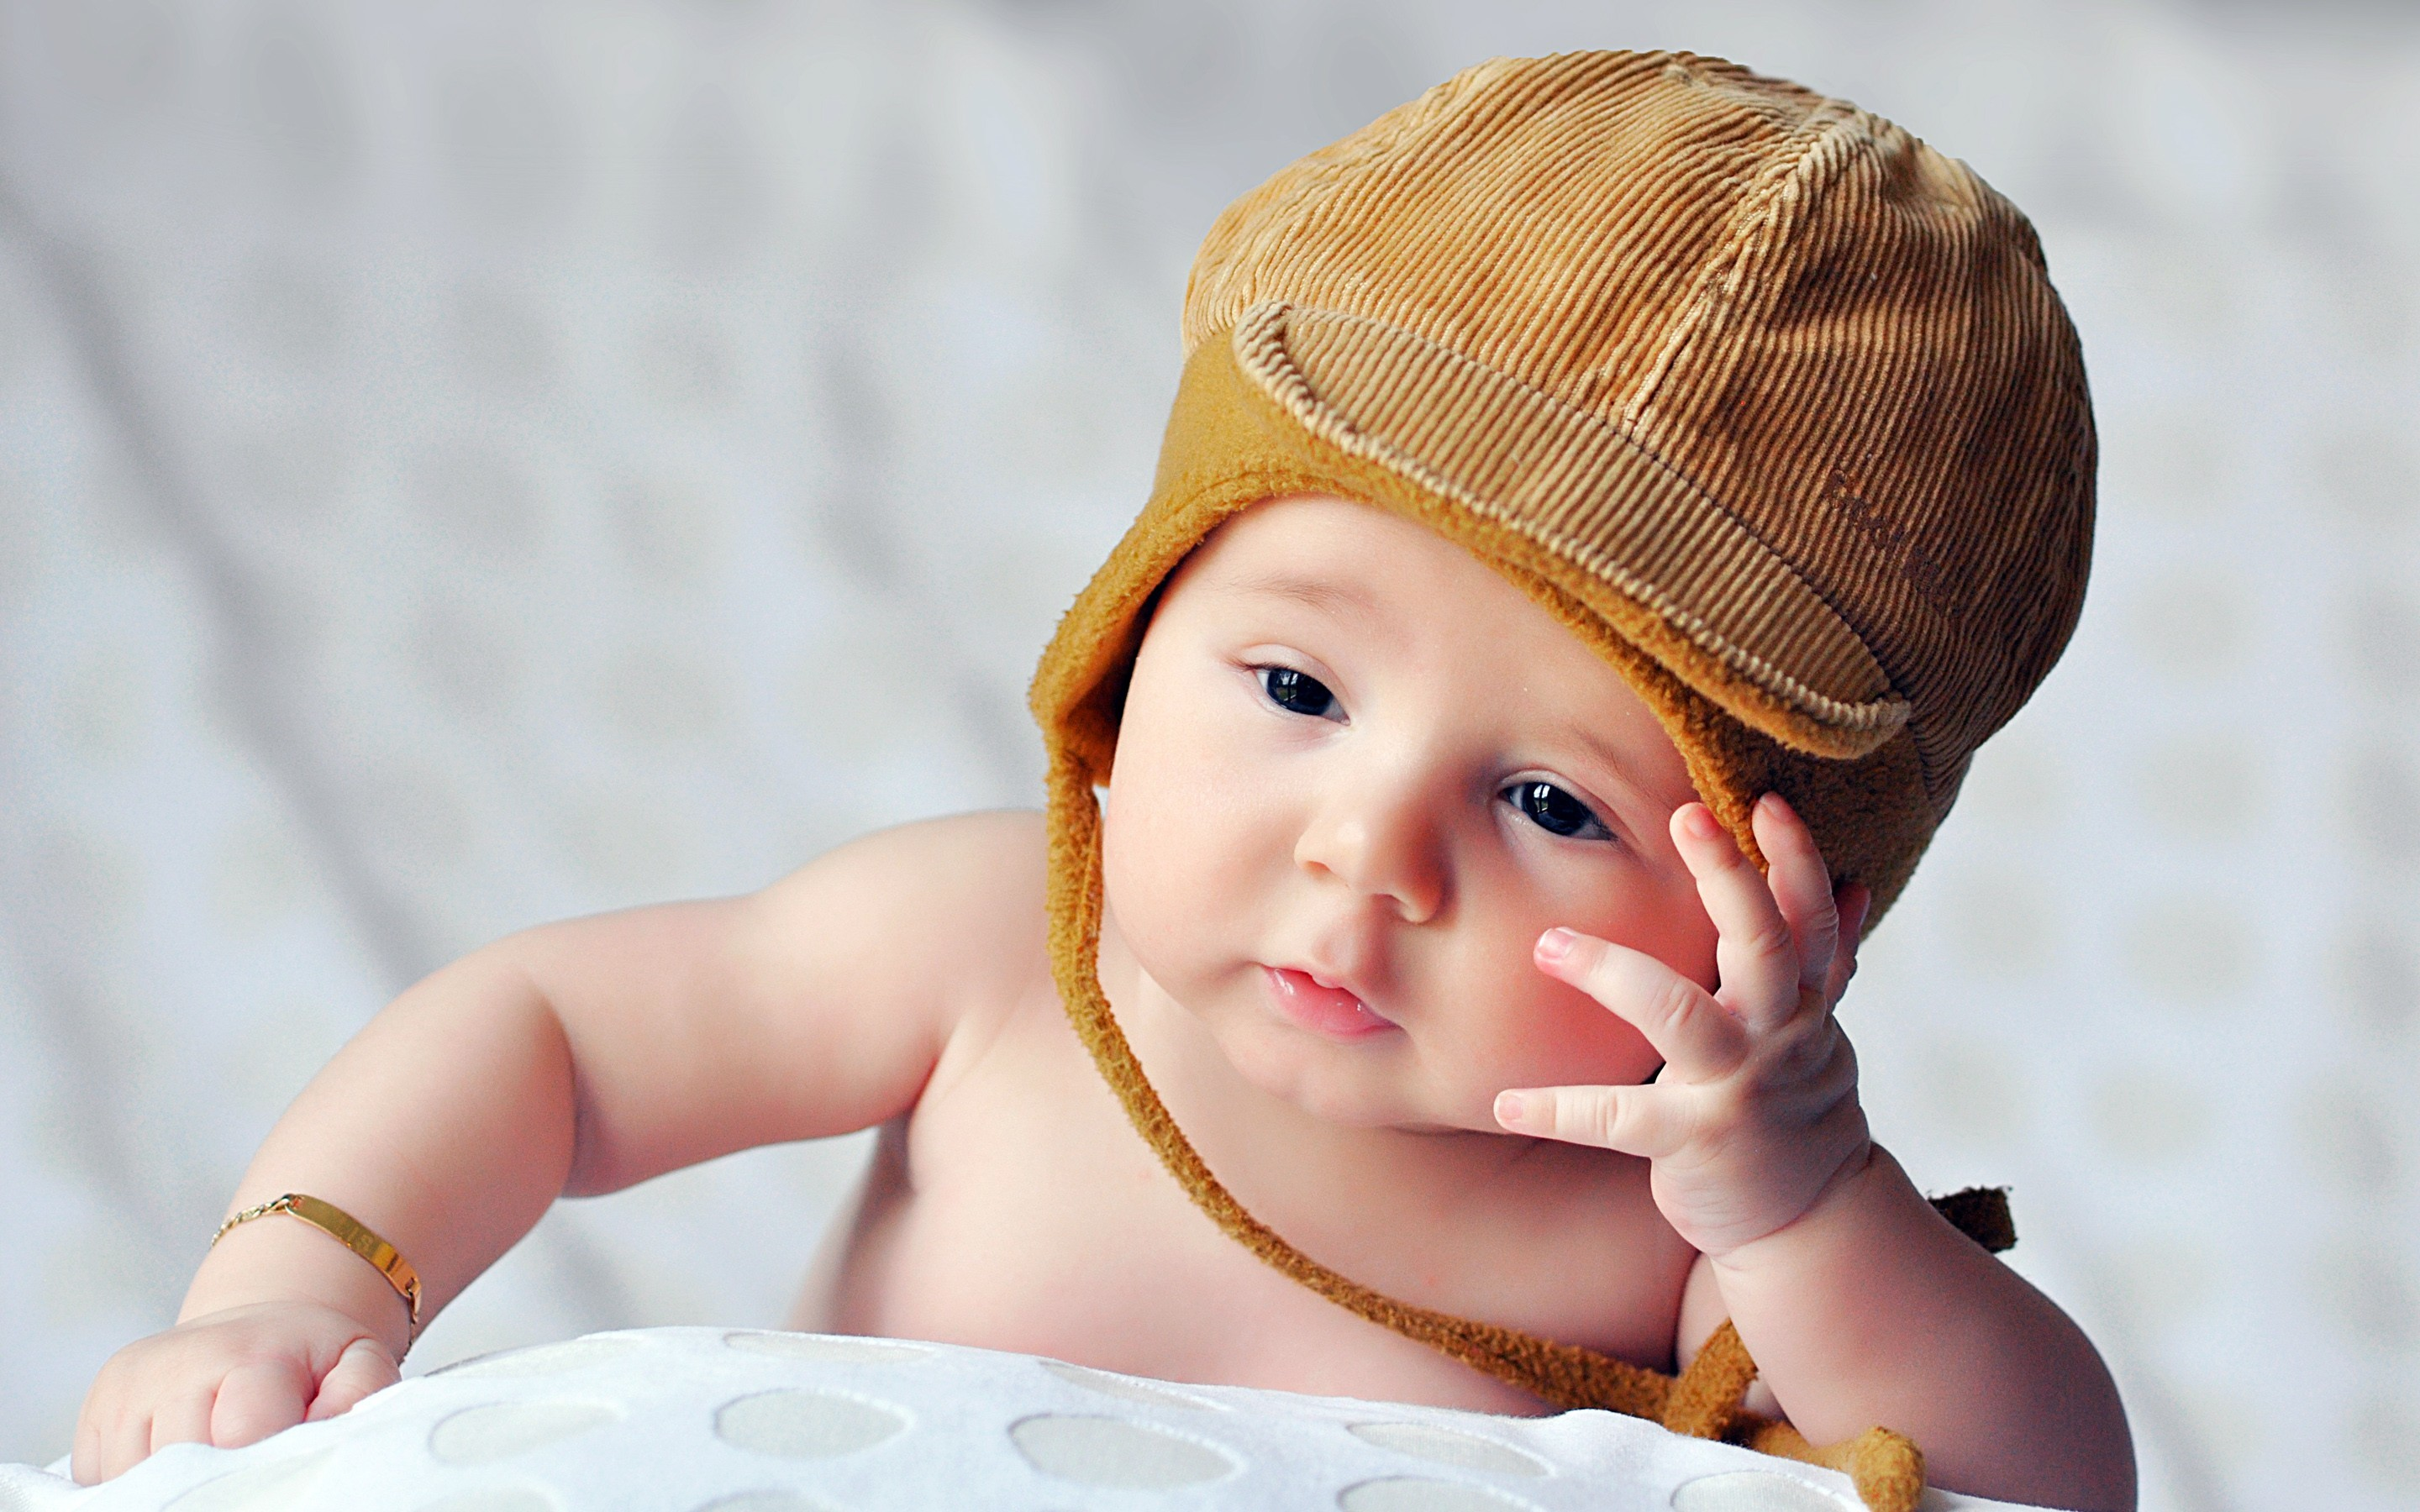 Cute Baby Boy Wallpapers ·① WallpaperTag